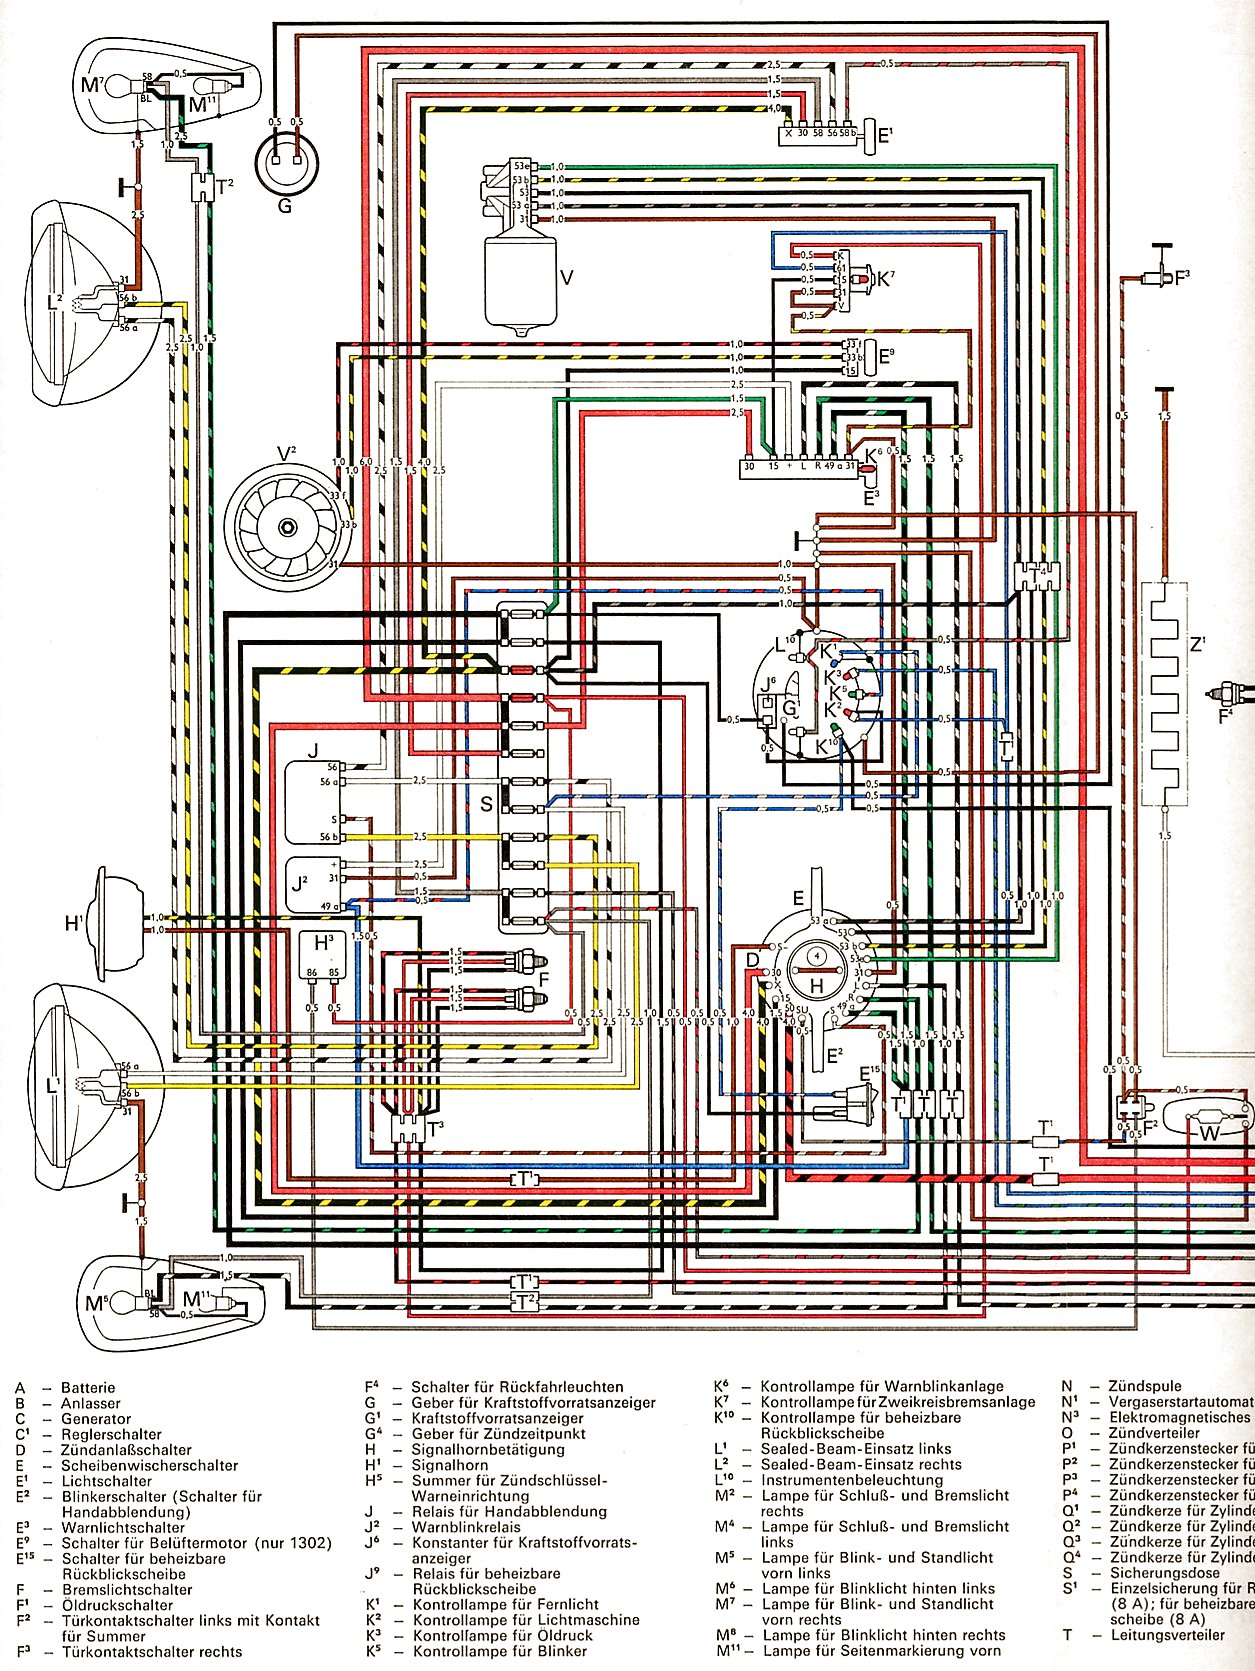 volkswagen thing wiring diagram wiring diagrams schematics 1971 vw beetle wiring diagram 1974 vw thing wiring harness wire center \\u2022 rh marstudios co at 74 vw thing